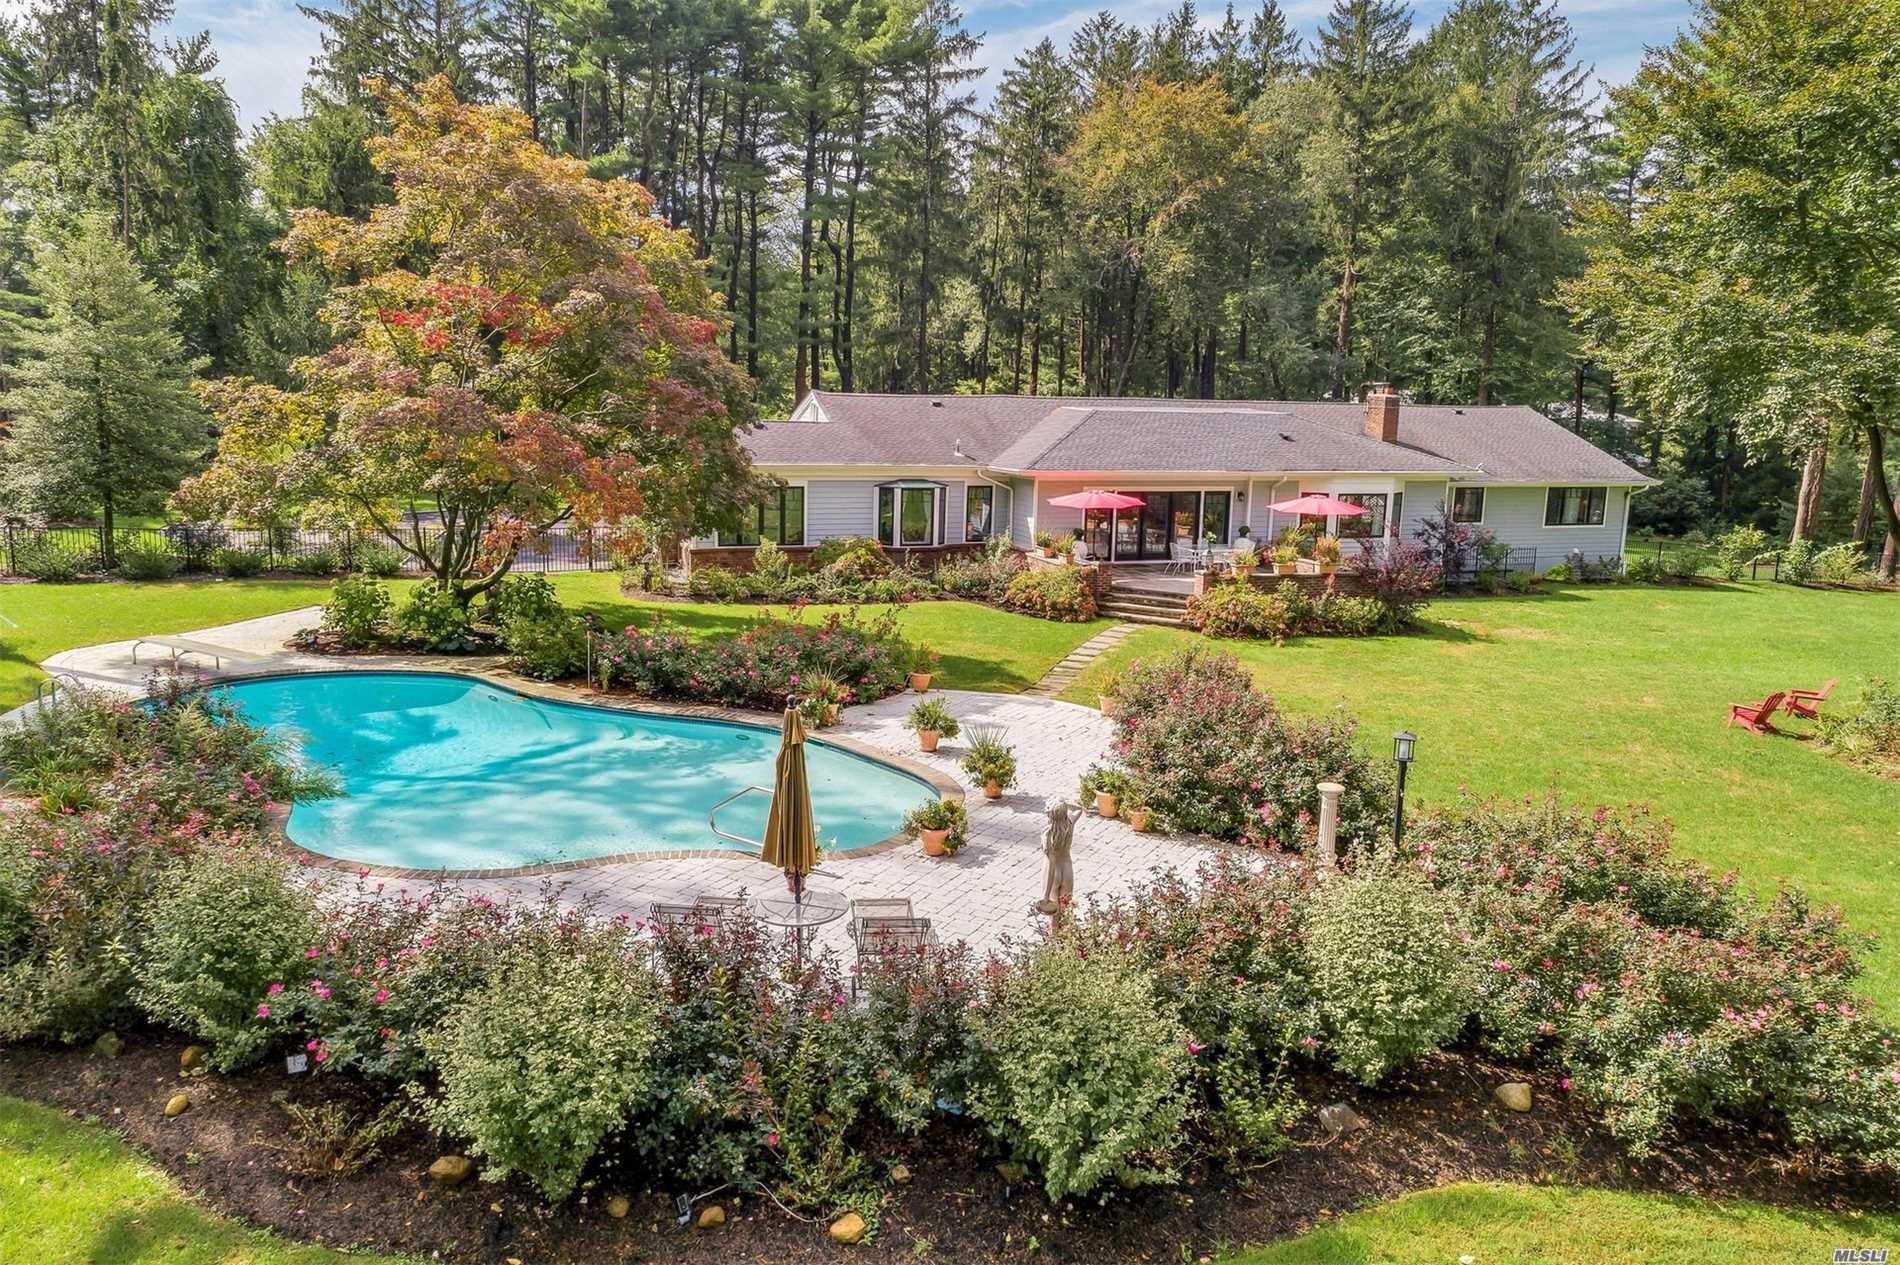 Pheasant Hill-Totally Rebuilt From Studs In 2018. State Of The Art: Bright And Inviting Maintenance Free Siding, Smart Pool, Smart Alarm, 950 Flowering Bushes And Trees, Underground Wiring & Lighting W/Motion Detectors, Too Much To List. Set Back, Fully Fenced And 150 Feet From Cul-De-Sac Overlooking Golf Course With Lovely Views. Turn-Key Easy First Floor Living With Additional 3, 700 Sq.Ft. Of Finished Basement And Cheerful Living Space With Outside Entrance.